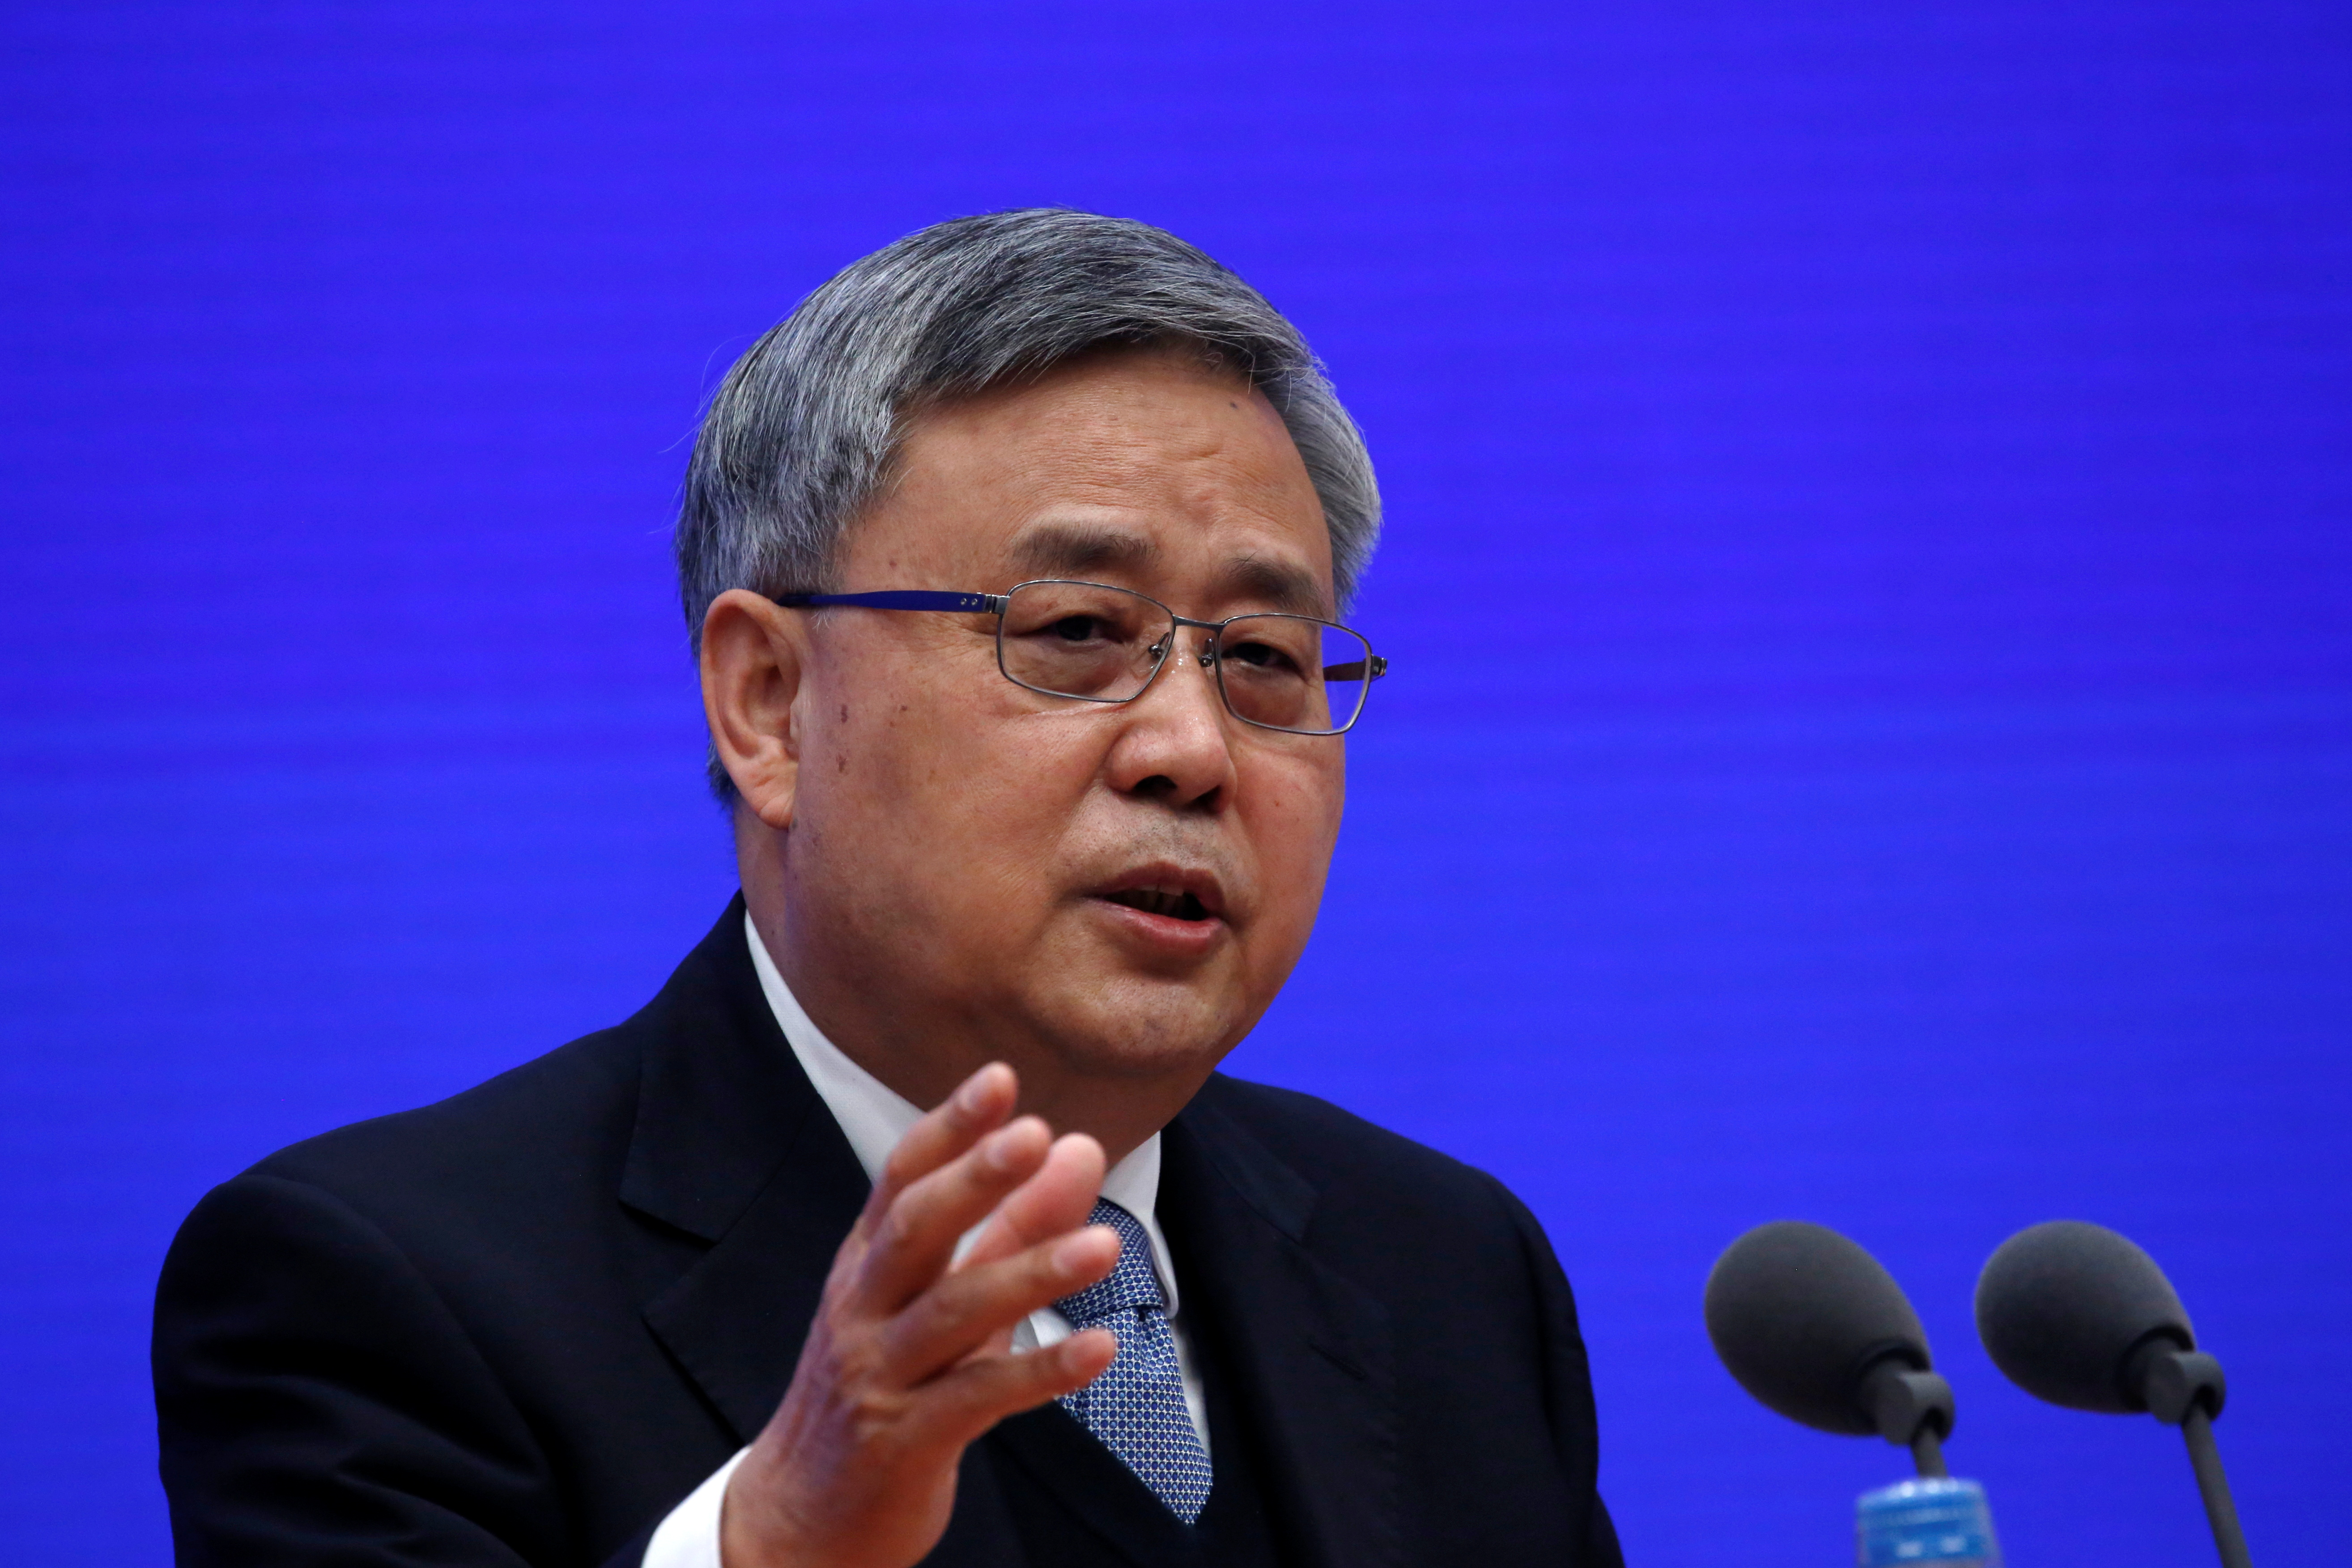 Guo Shuqing, Chairman of the China Banking and Insurance Regulatory Commission (CBIRC), attends a news conference in Beijing, China March 2, 2021. REUTERS/Tingshu Wang